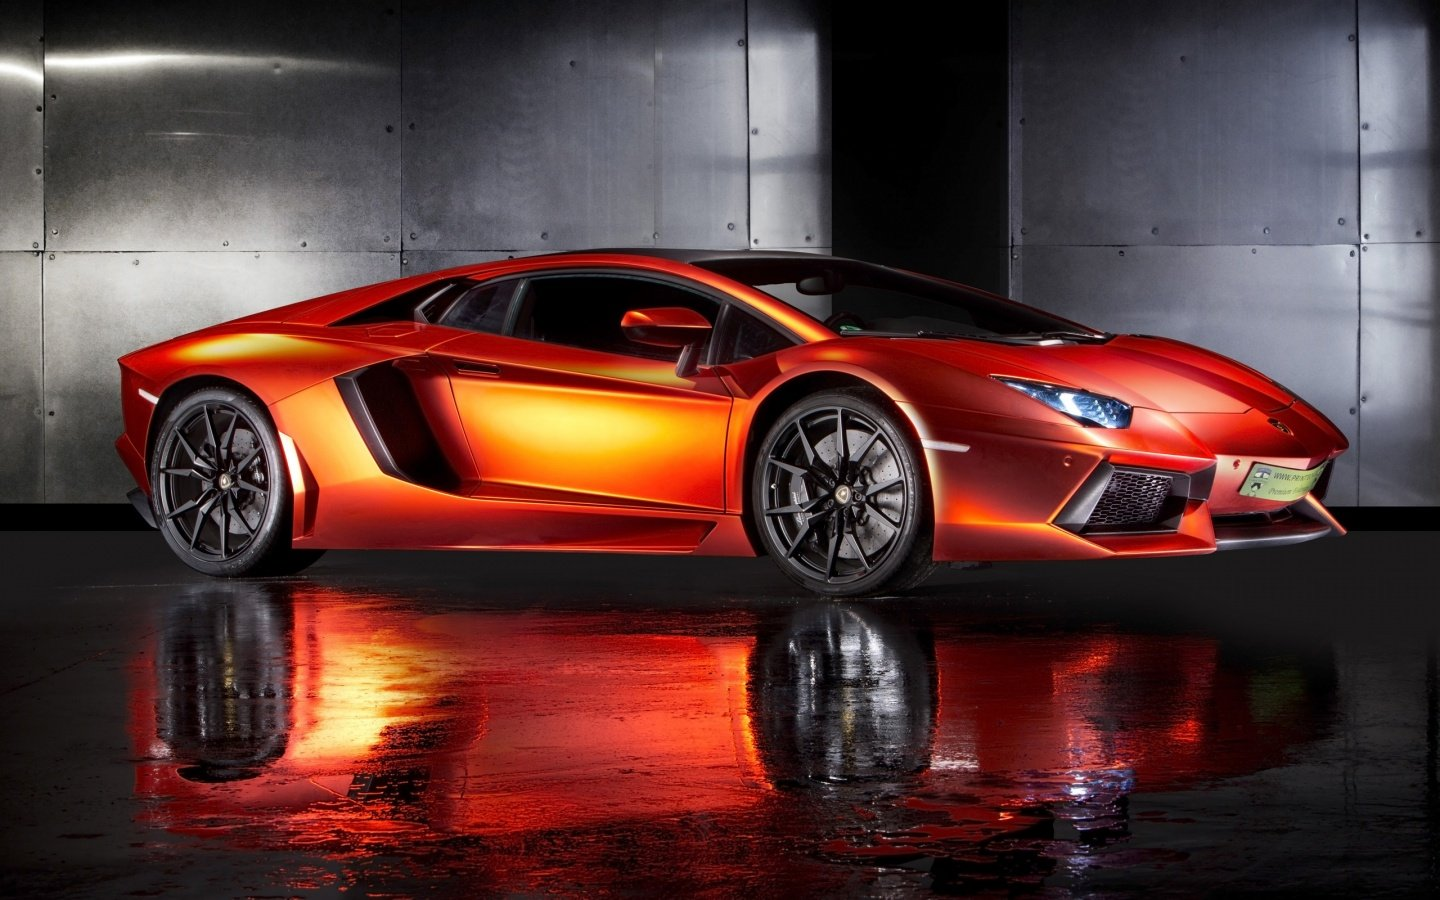 2013 Print Tech Lamborghini Aventador Wallpapers HD Wallpapers 1440x900